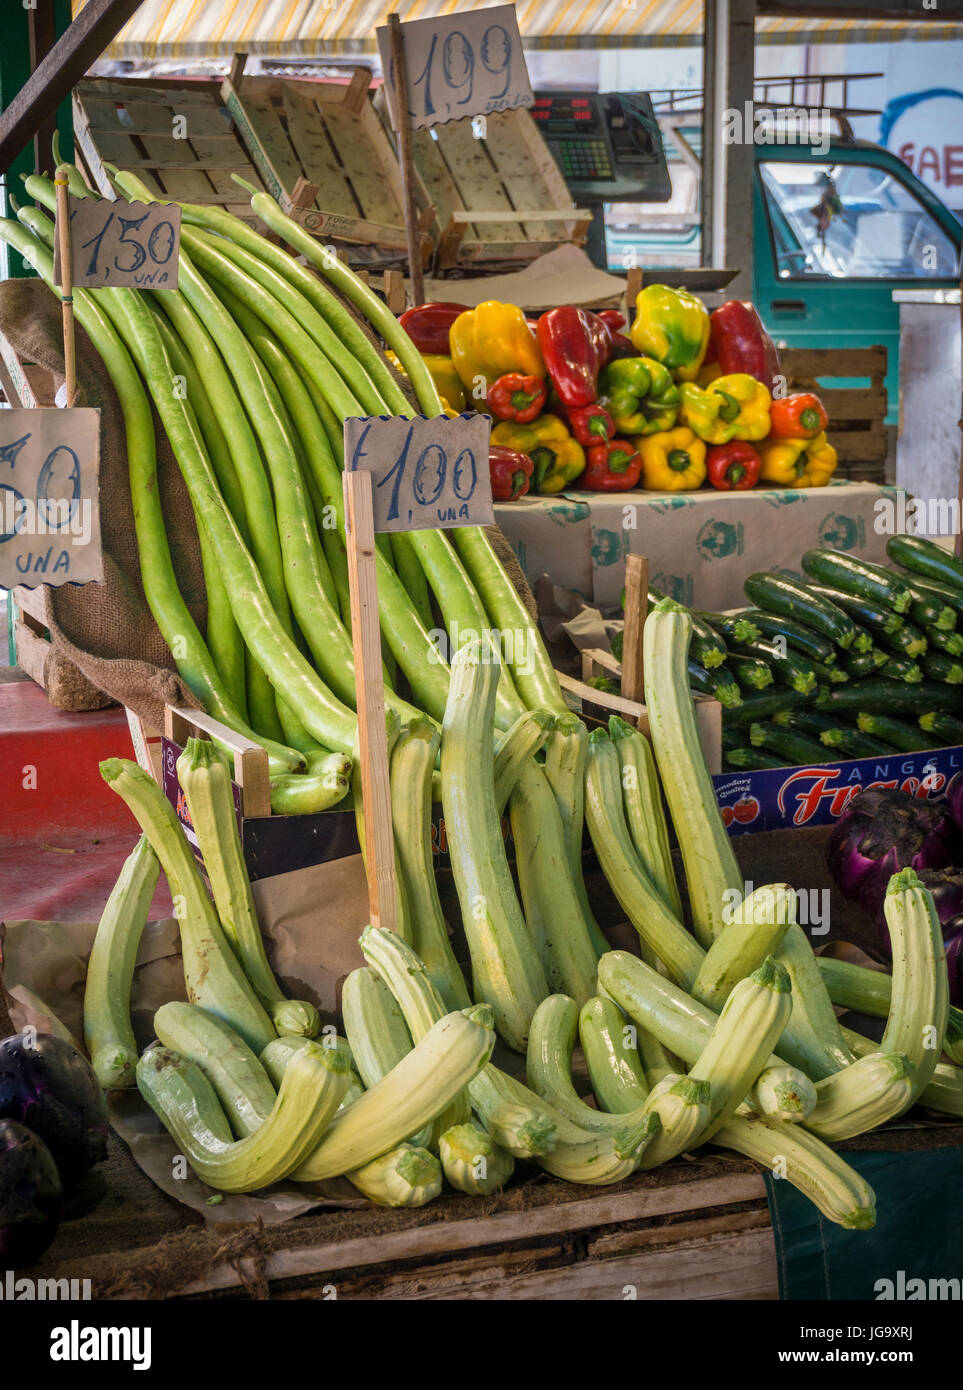 Varieties of courgettes on sale in The Ballaro Market in the Albergheria district of central Palermo, Sicily, Italy. - Stock Image